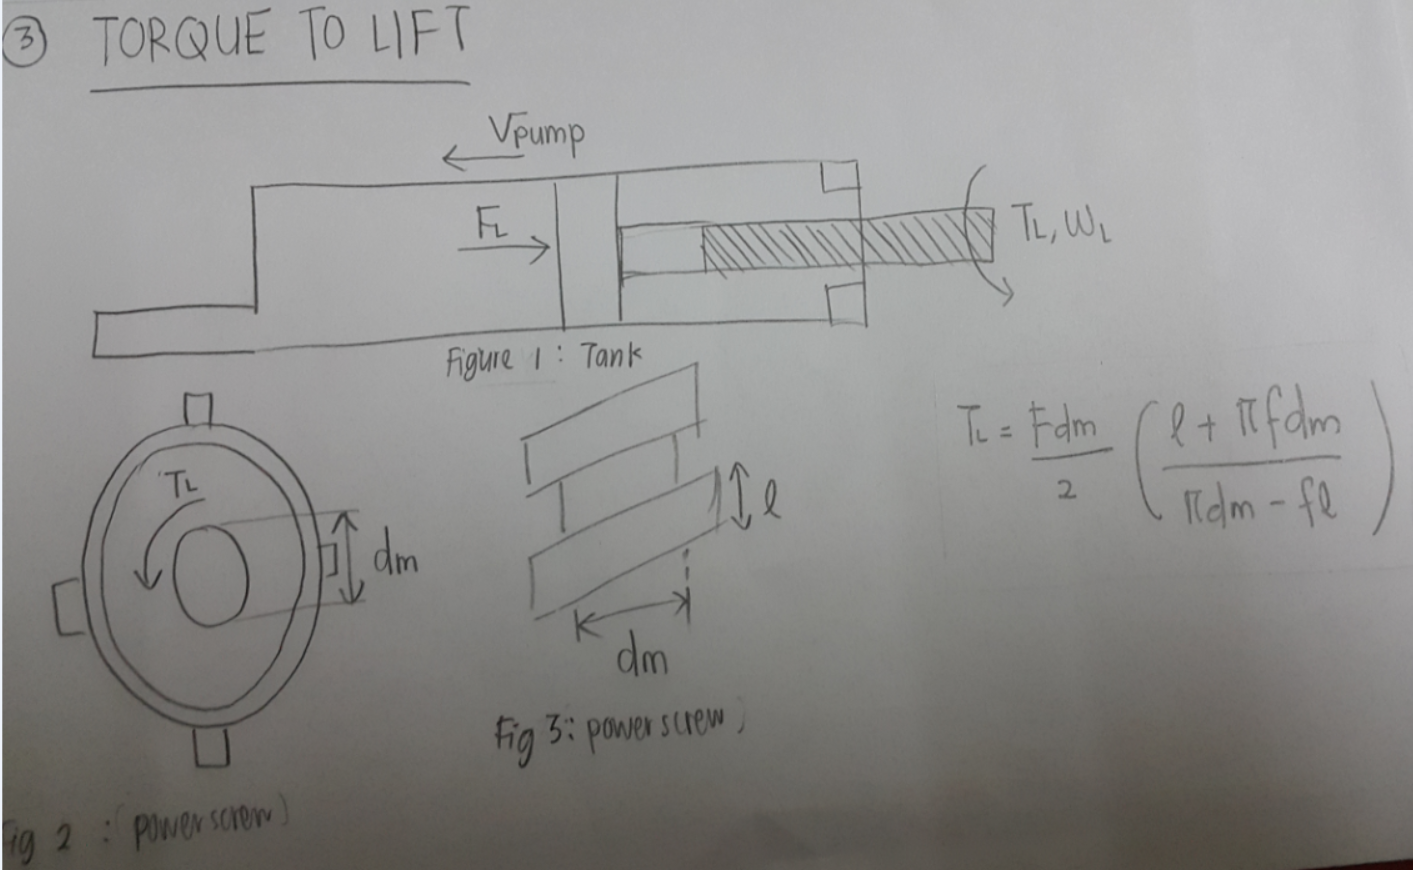 CALCULATION OF TORQUE TO LIFT